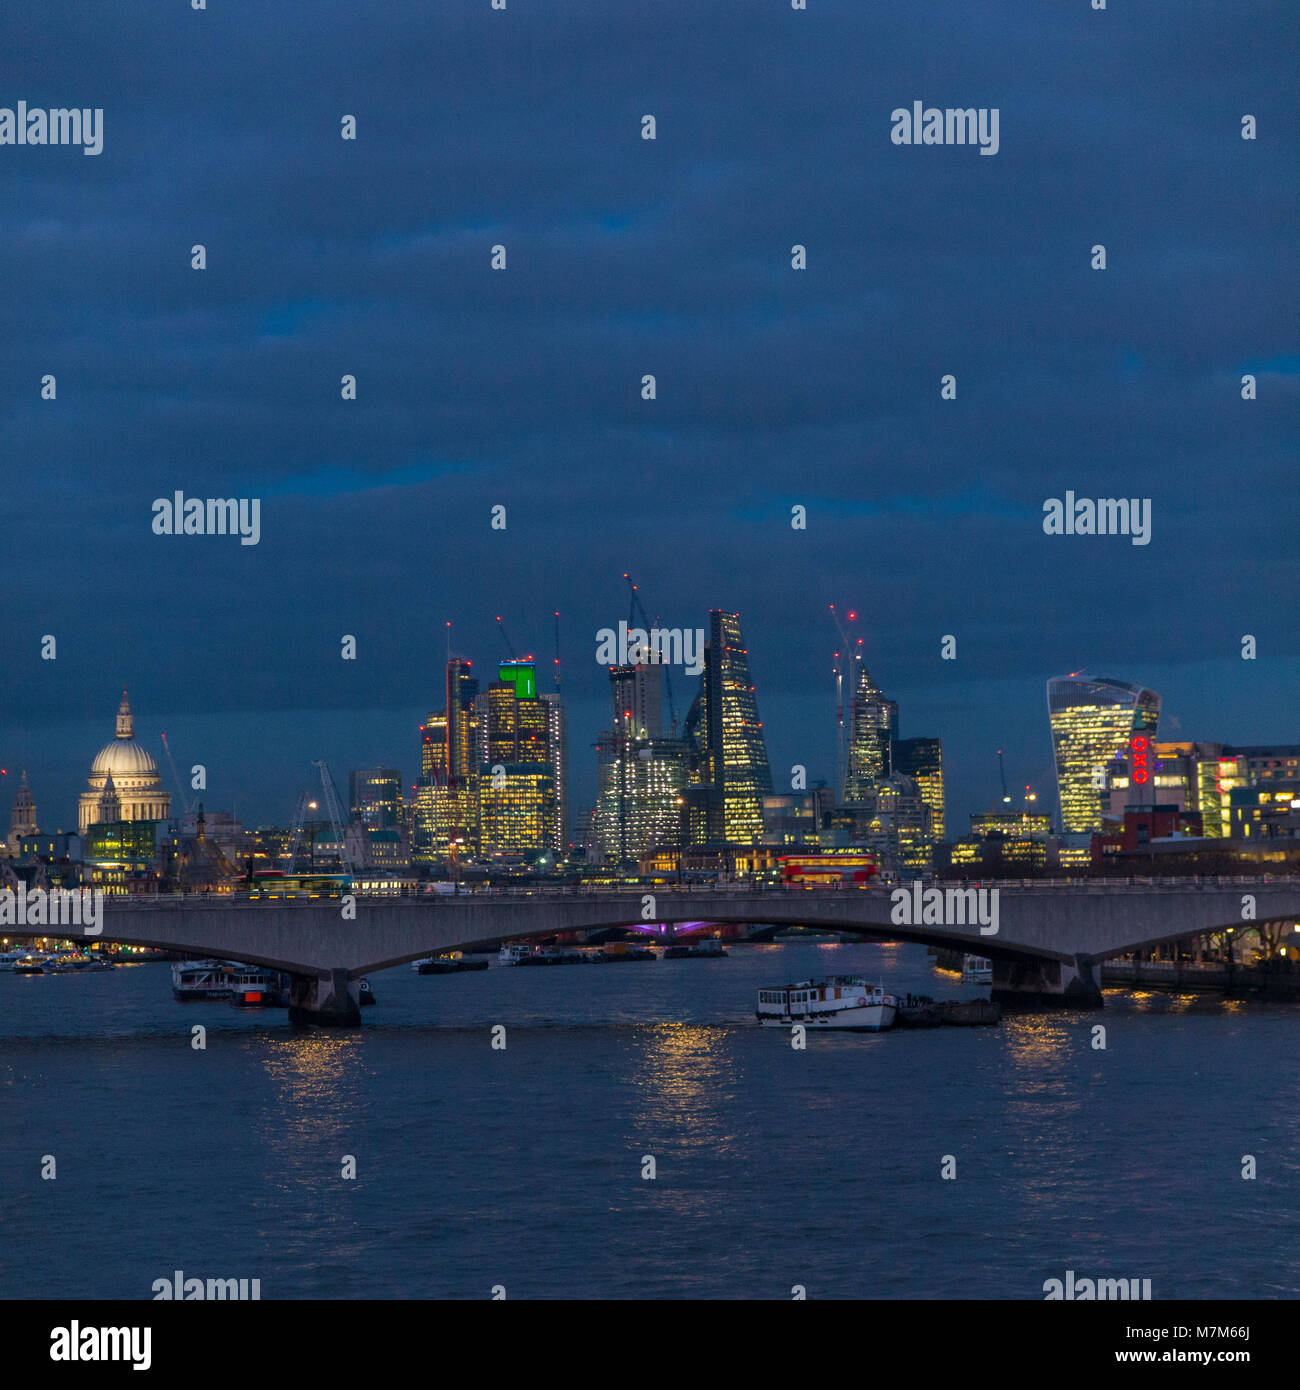 The City of London and St Paul's Cathedral  at night - Stock Image